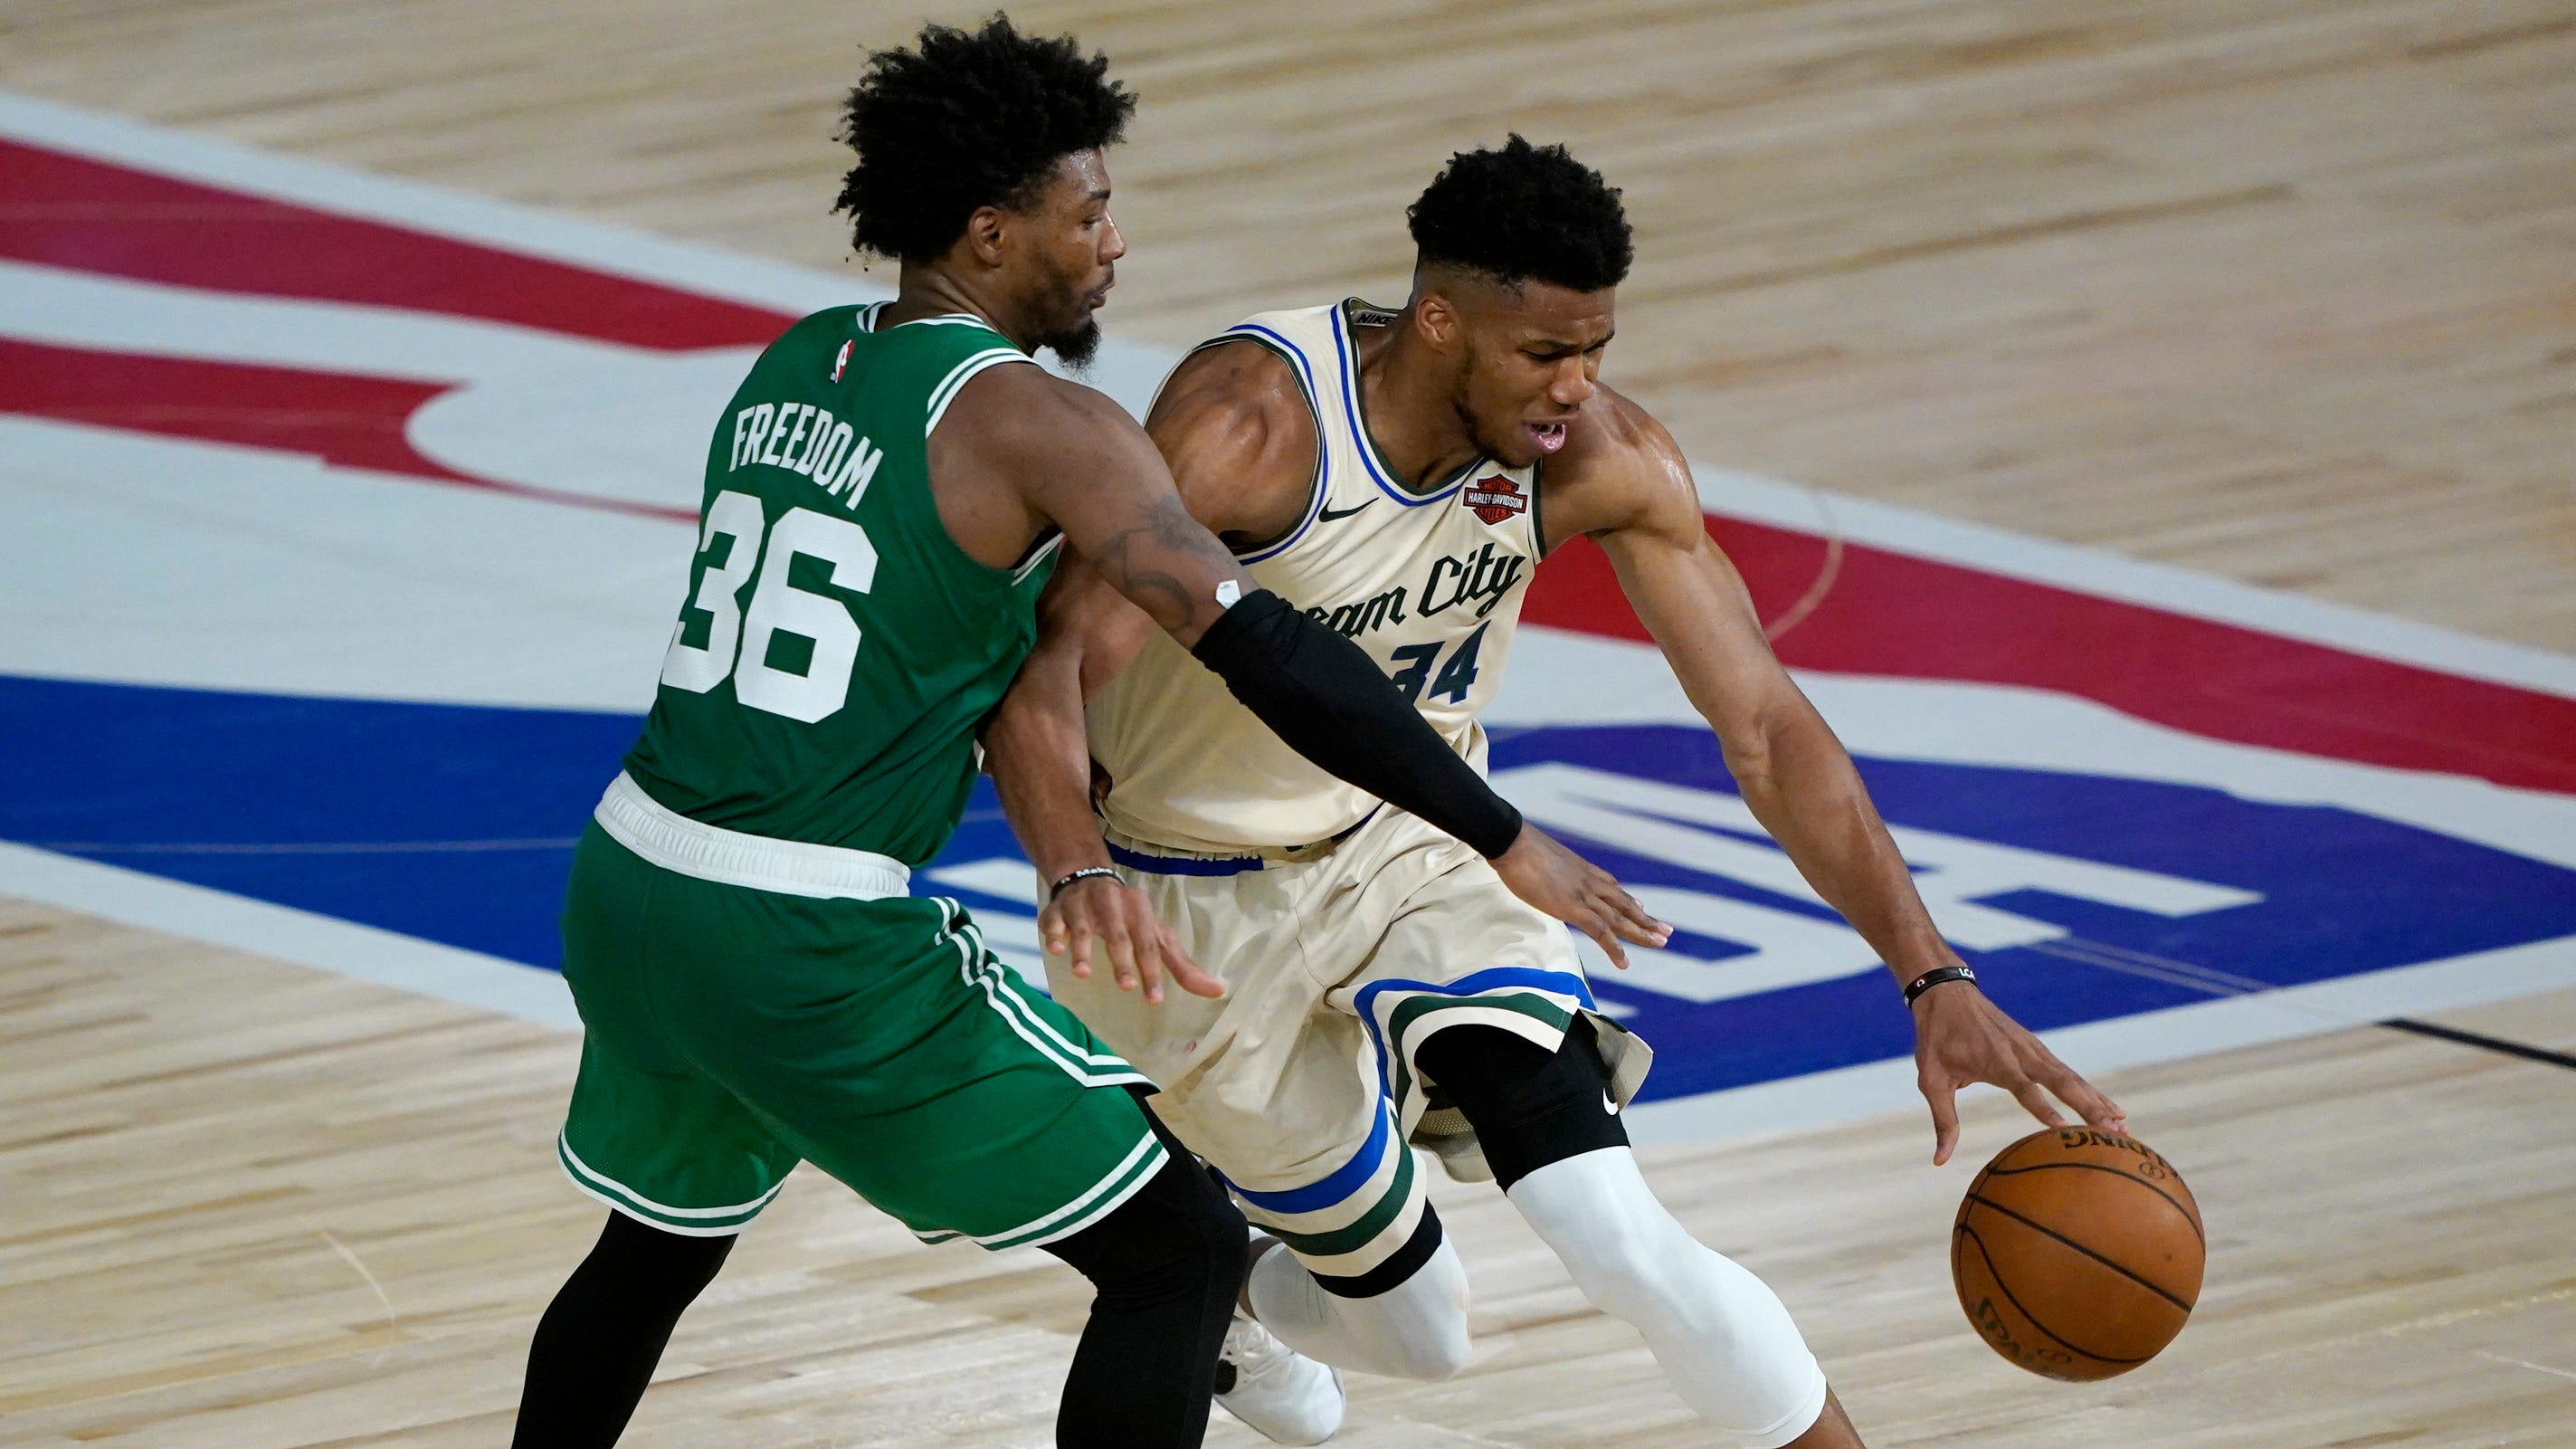 Do You Know The Game Take This Challenging Quiz About Nba Defense